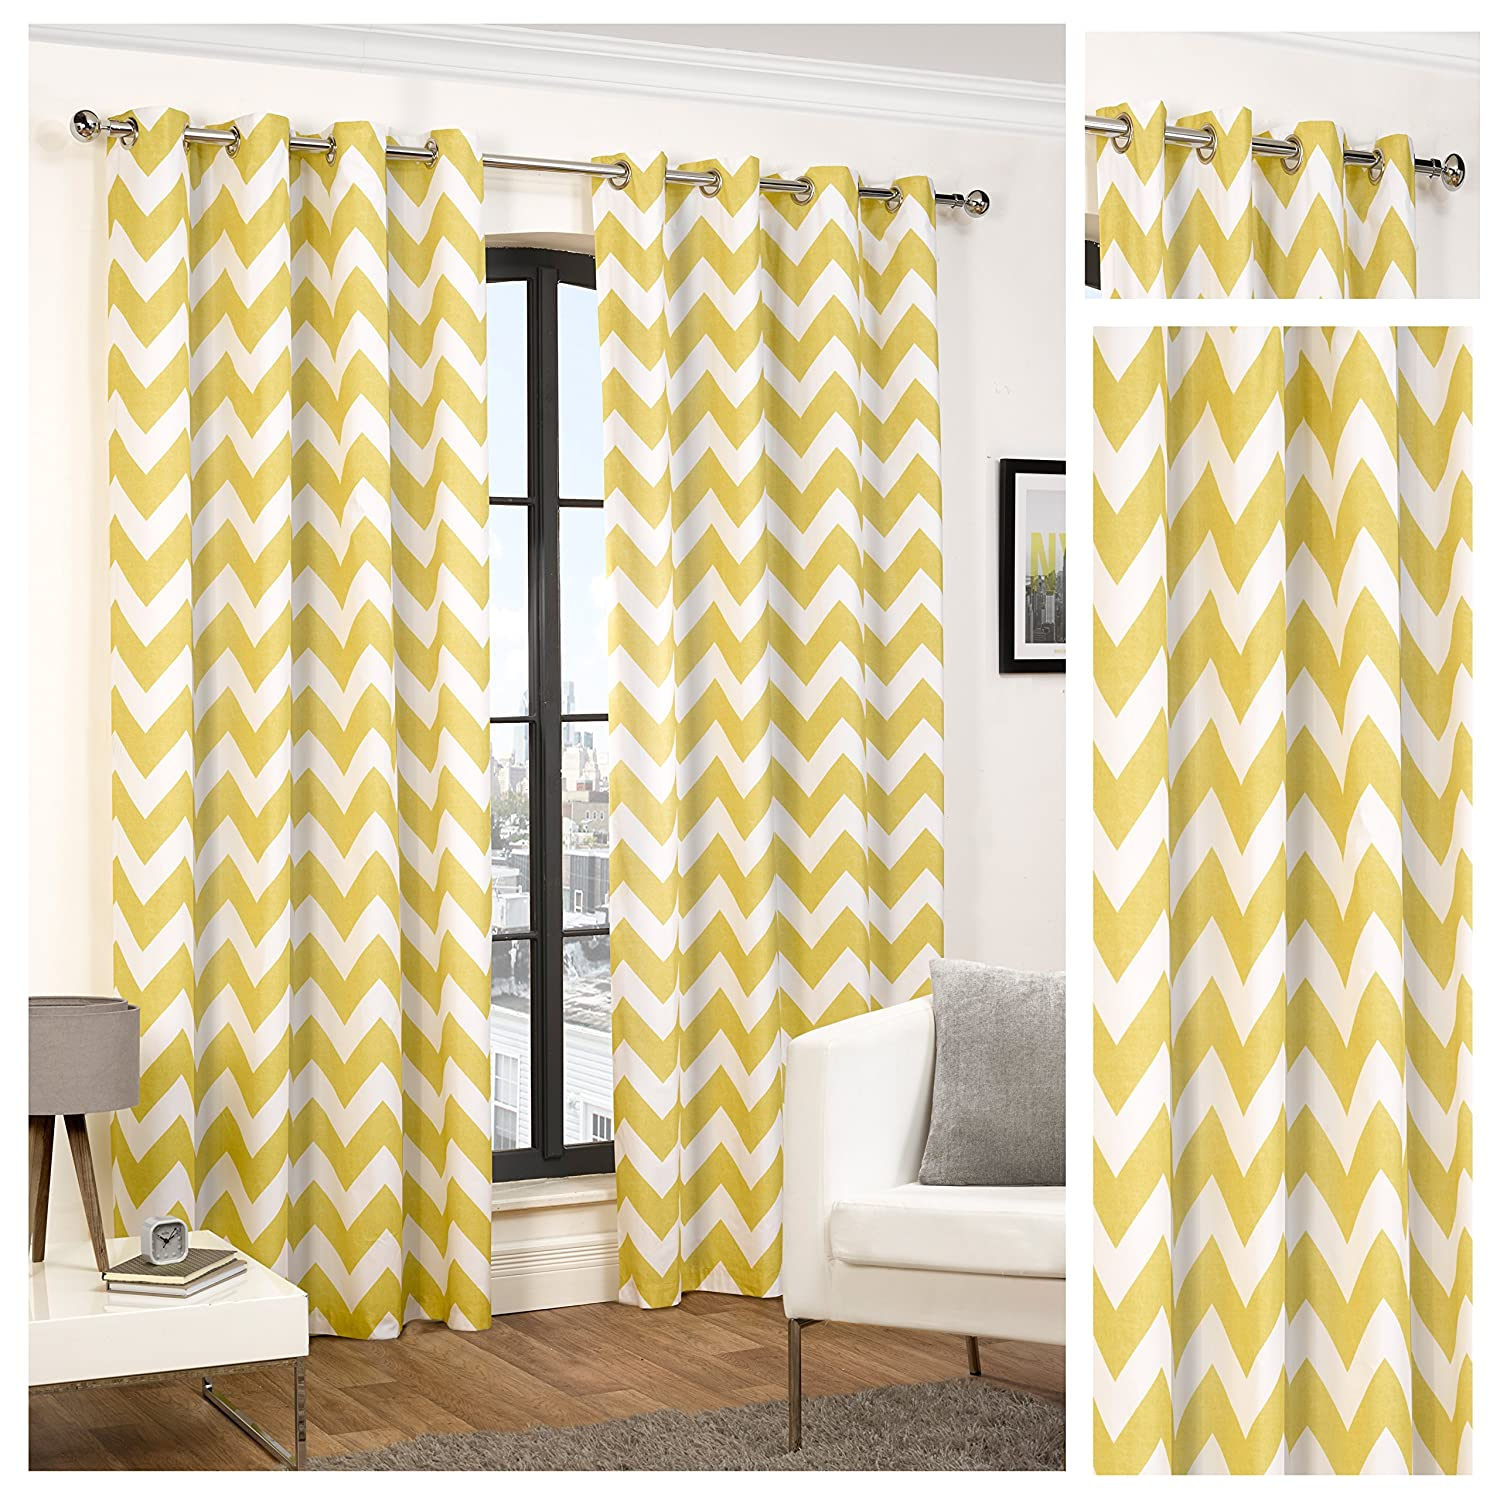 Yellow and grey chevron curtains - Hamilton Mcbride Chevron Ochre Ring Top Eyelet Fully Lined Readymade Curtain Pair 46x54in 116x137cm Approximately Amazon Co Uk Kitchen Home